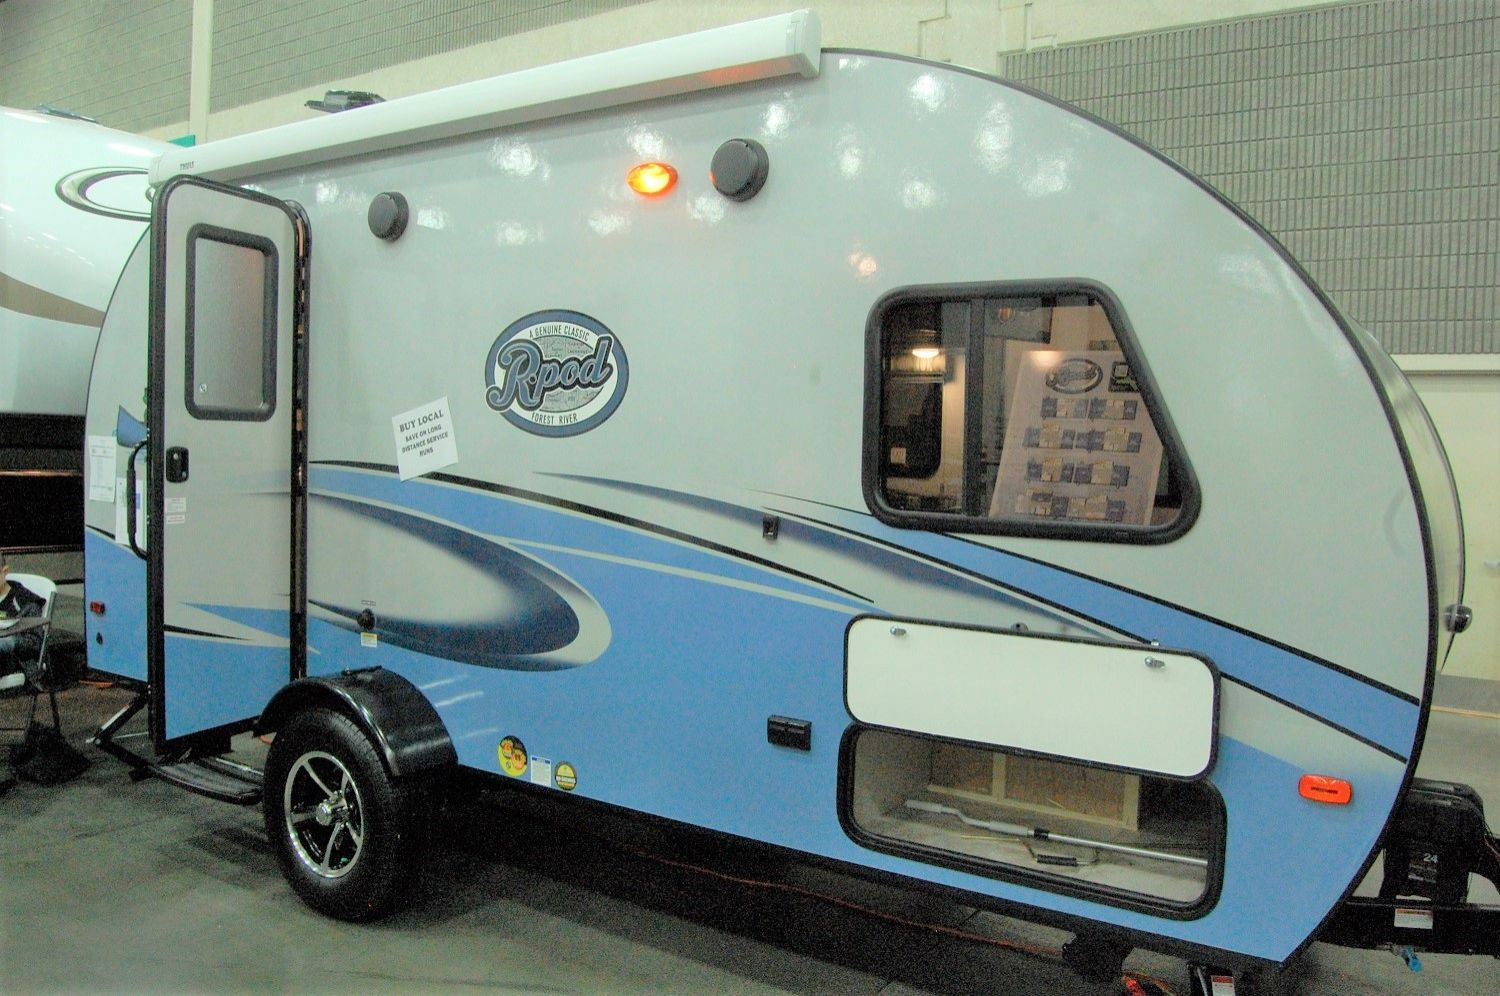 together camping plus full of camper trailers size travel a small bathrooms also big trailer bathroom with